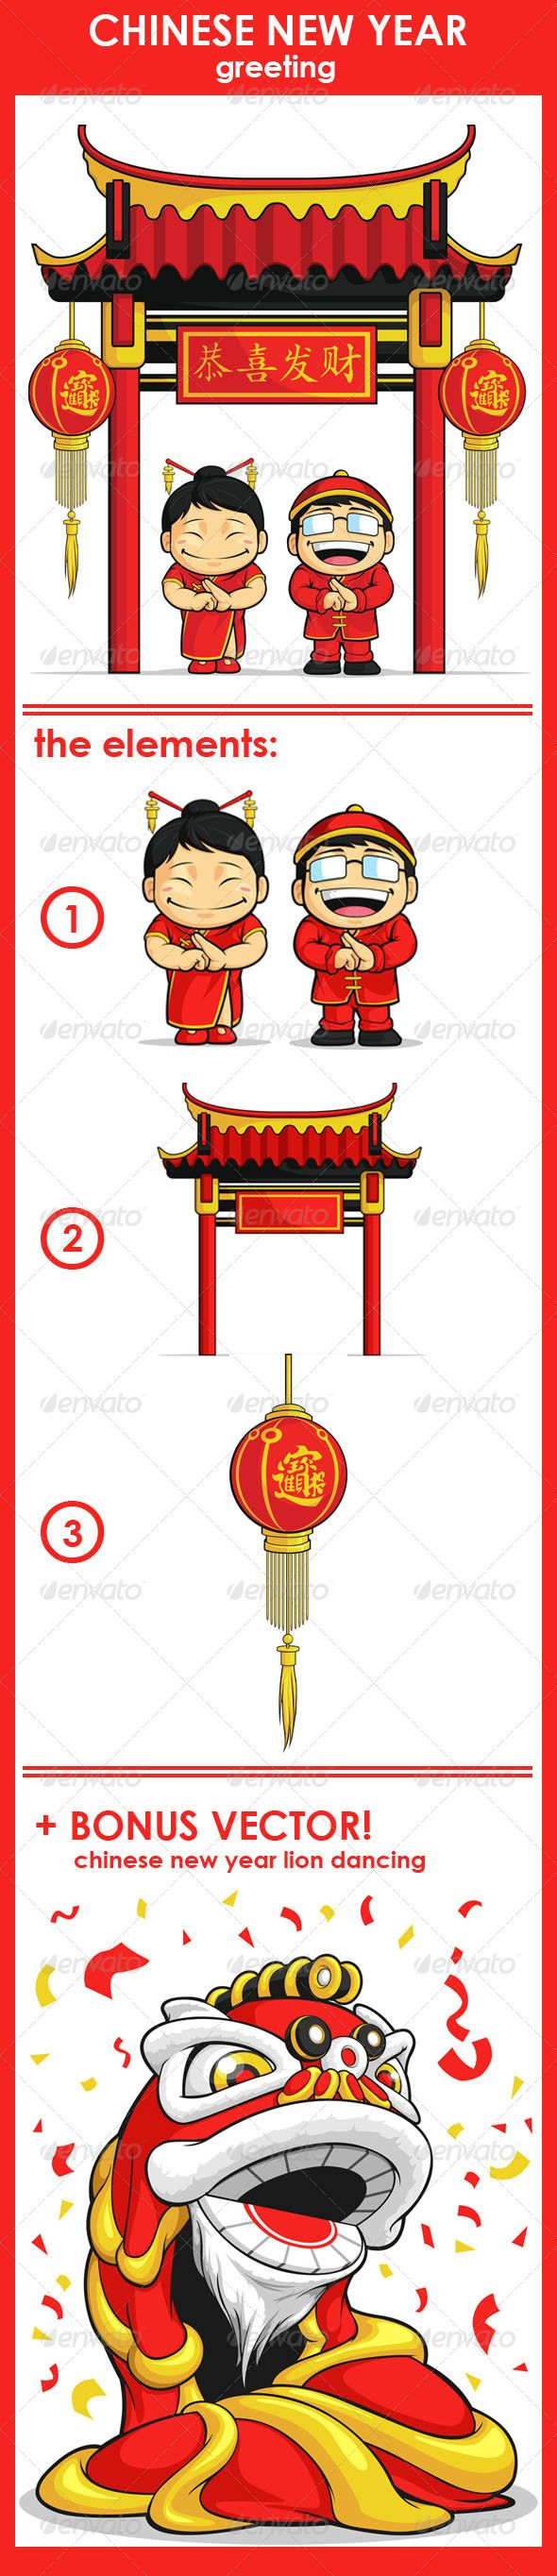 Chinese New Year Greeting by BluezAce A vector set of chinese boy & girl greeting, with chinese gate & lantern behind them. Drawn in cartoon style, this vector is very